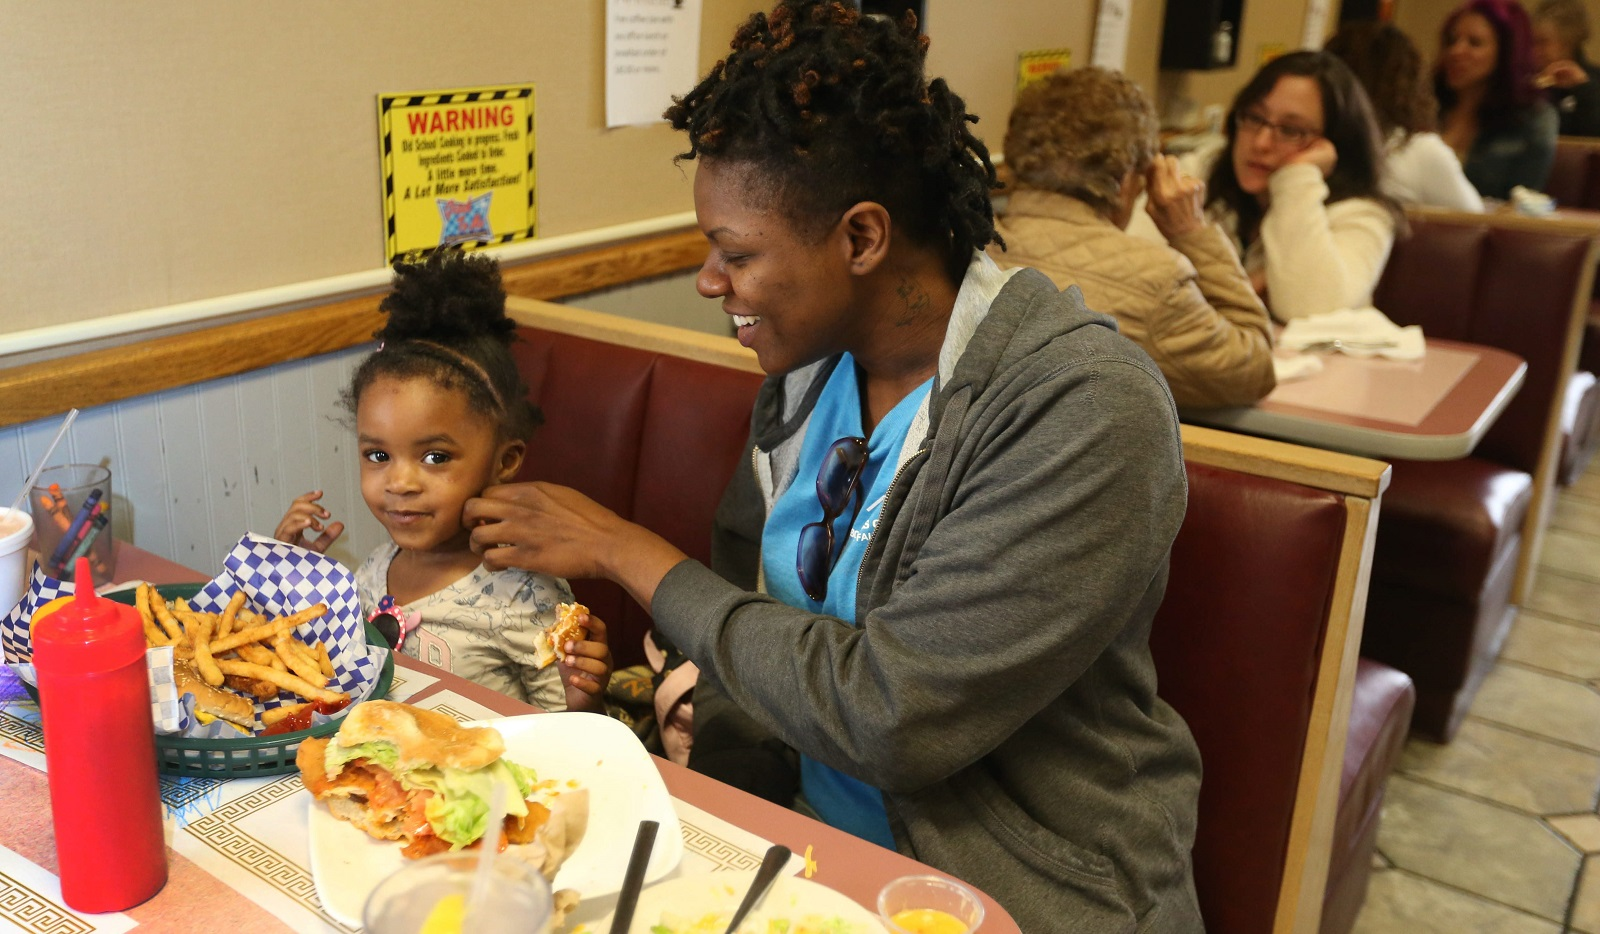 Tiffani Wofford, of Buffalo, eats lunch at Greek to Me with her daughter Song Alexander, 2. (Sharon Cantillon/Buffalo News)